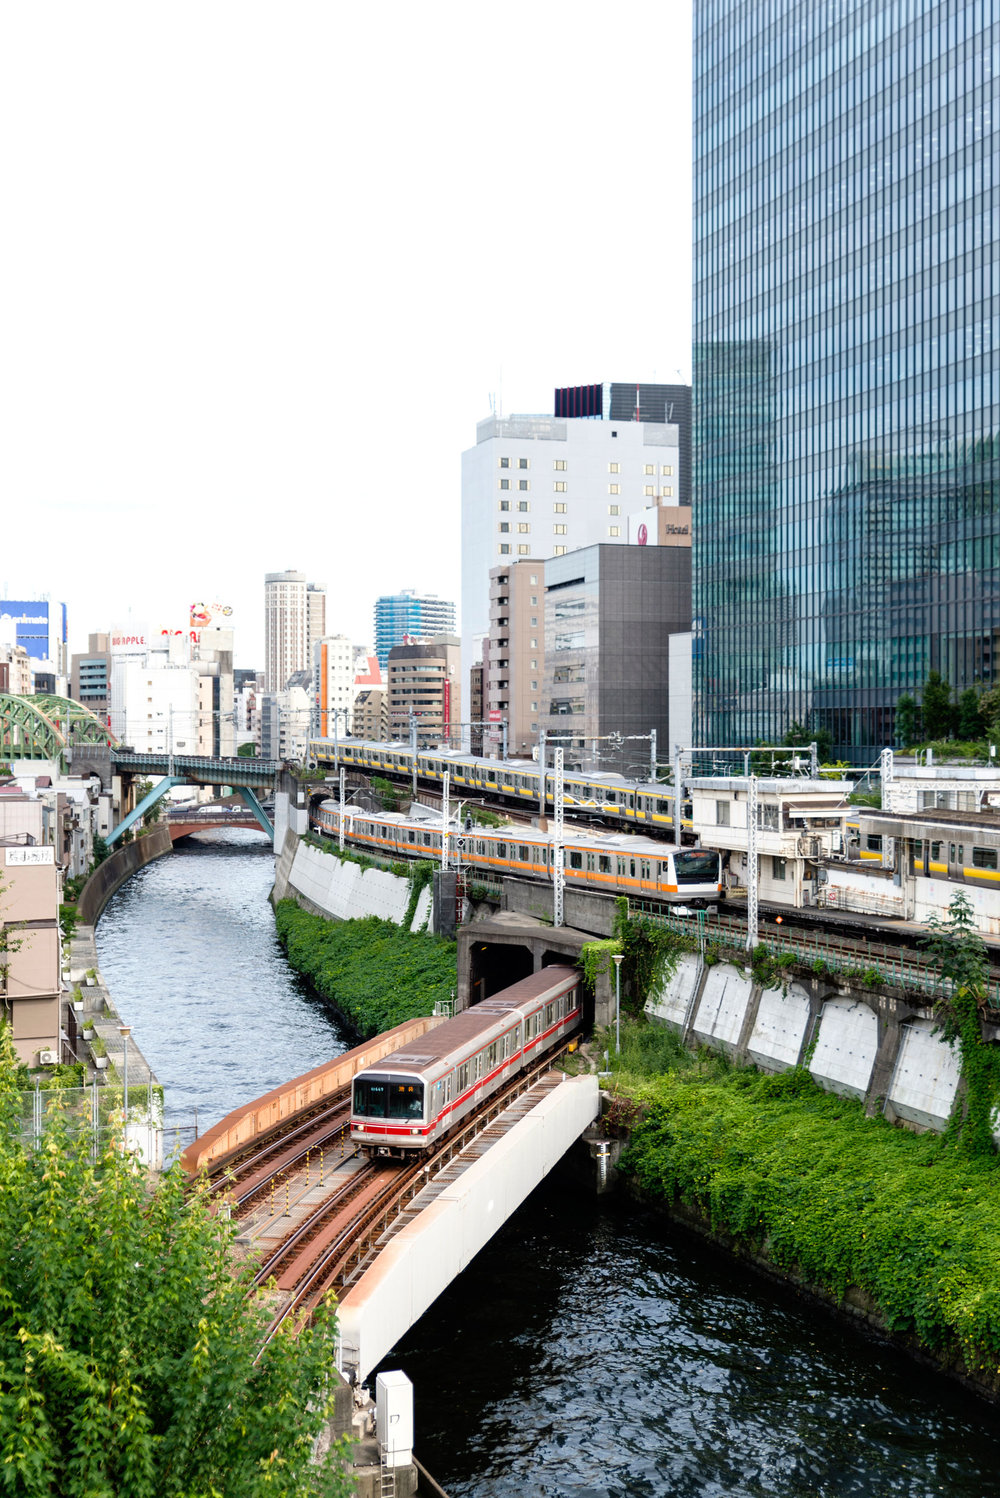 ochanomizu-trains-web.jpg